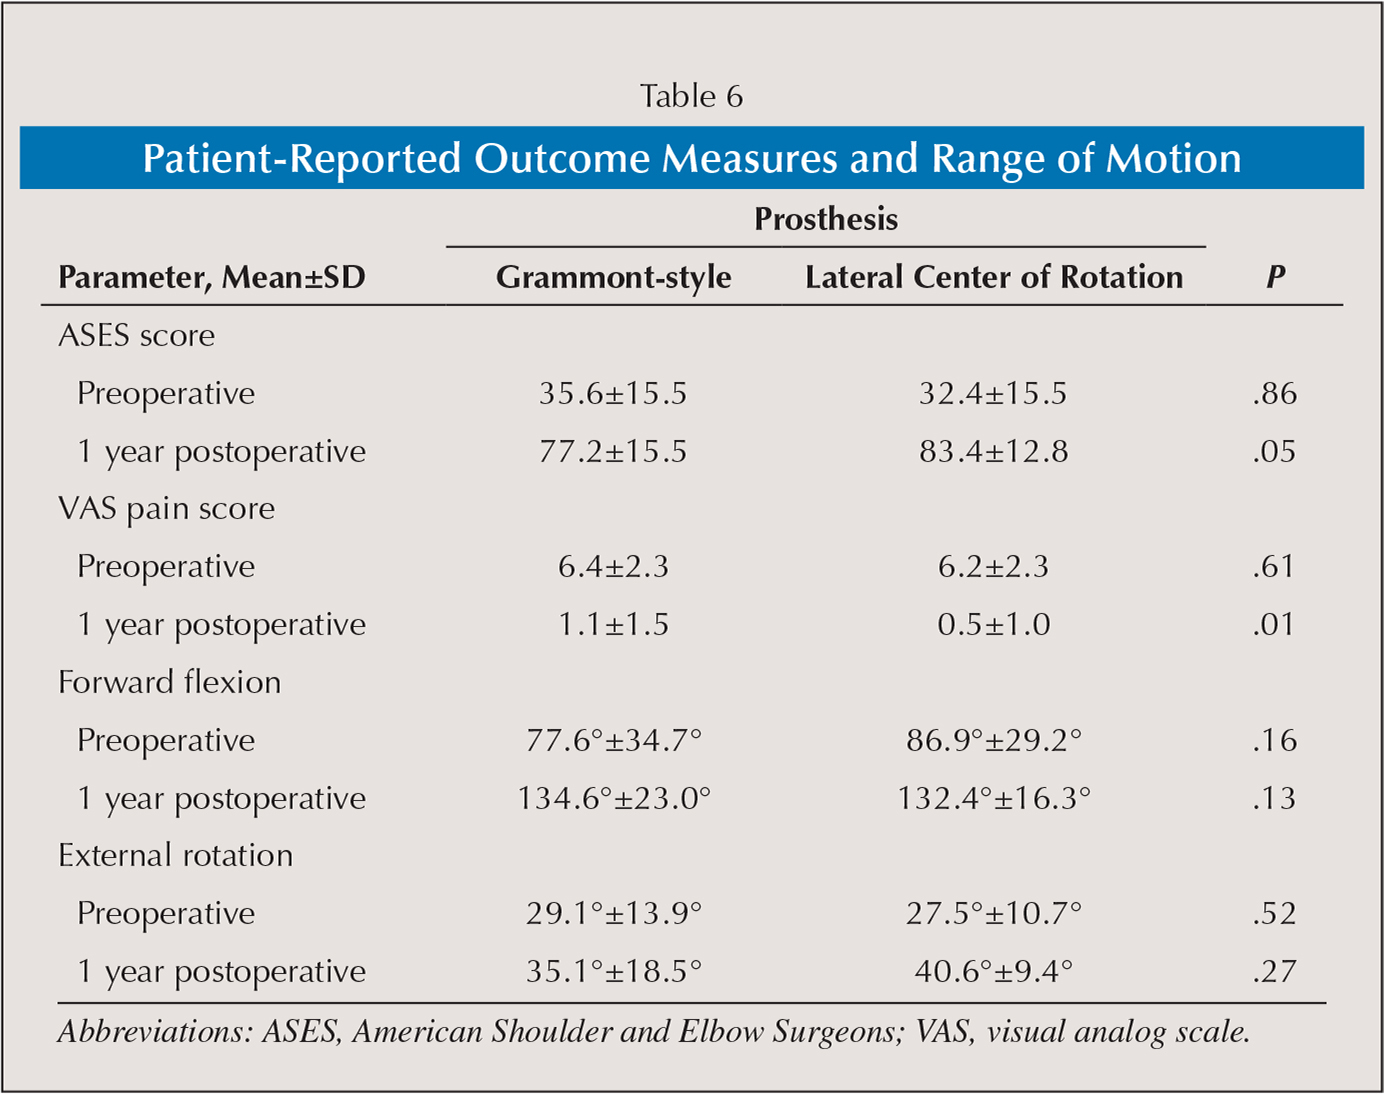 Patient-Reported Outcome Measures and Range of Motion